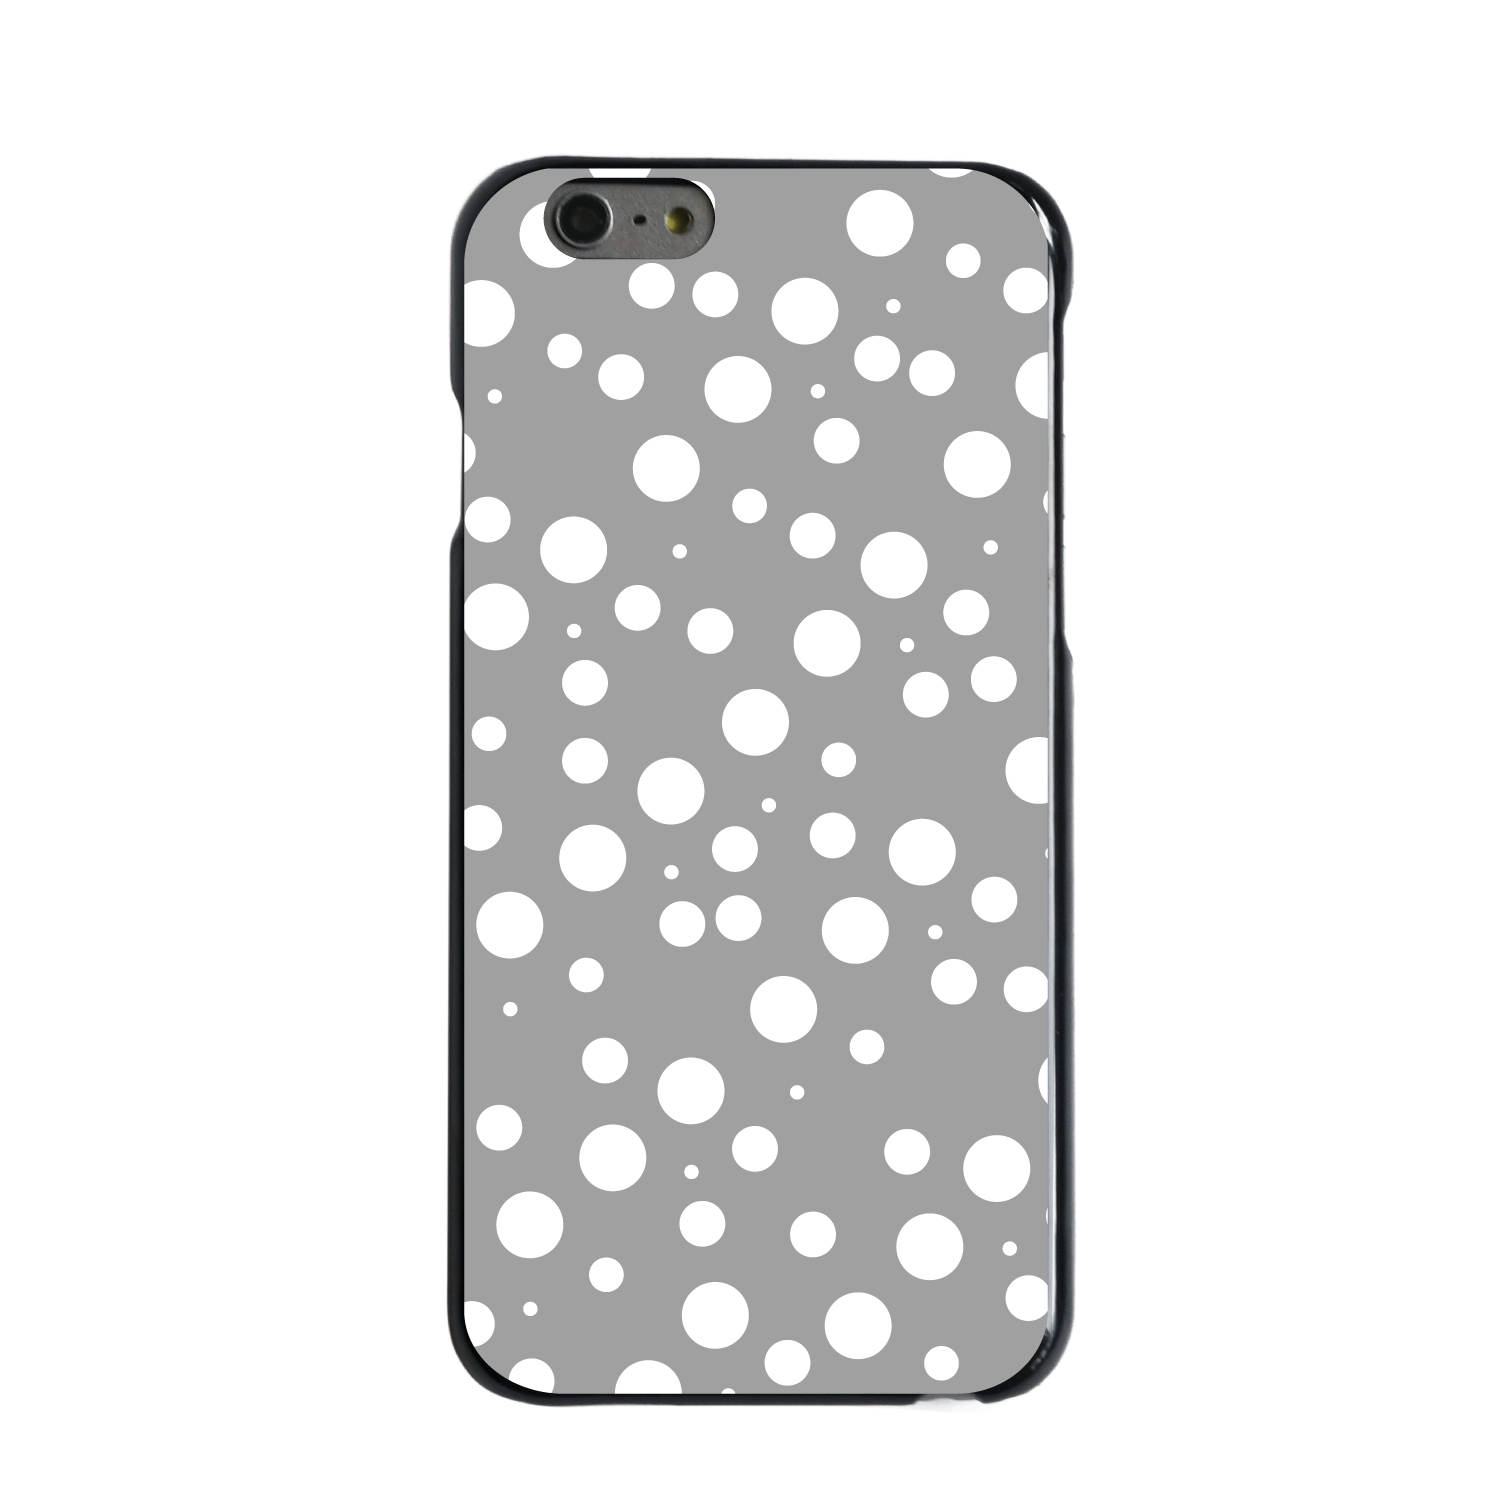 "CUSTOM Black Hard Plastic Snap-On Case for Apple iPhone 6 / 6S (4.7"" Screen) - Silver White Bubbles Polka Dots"